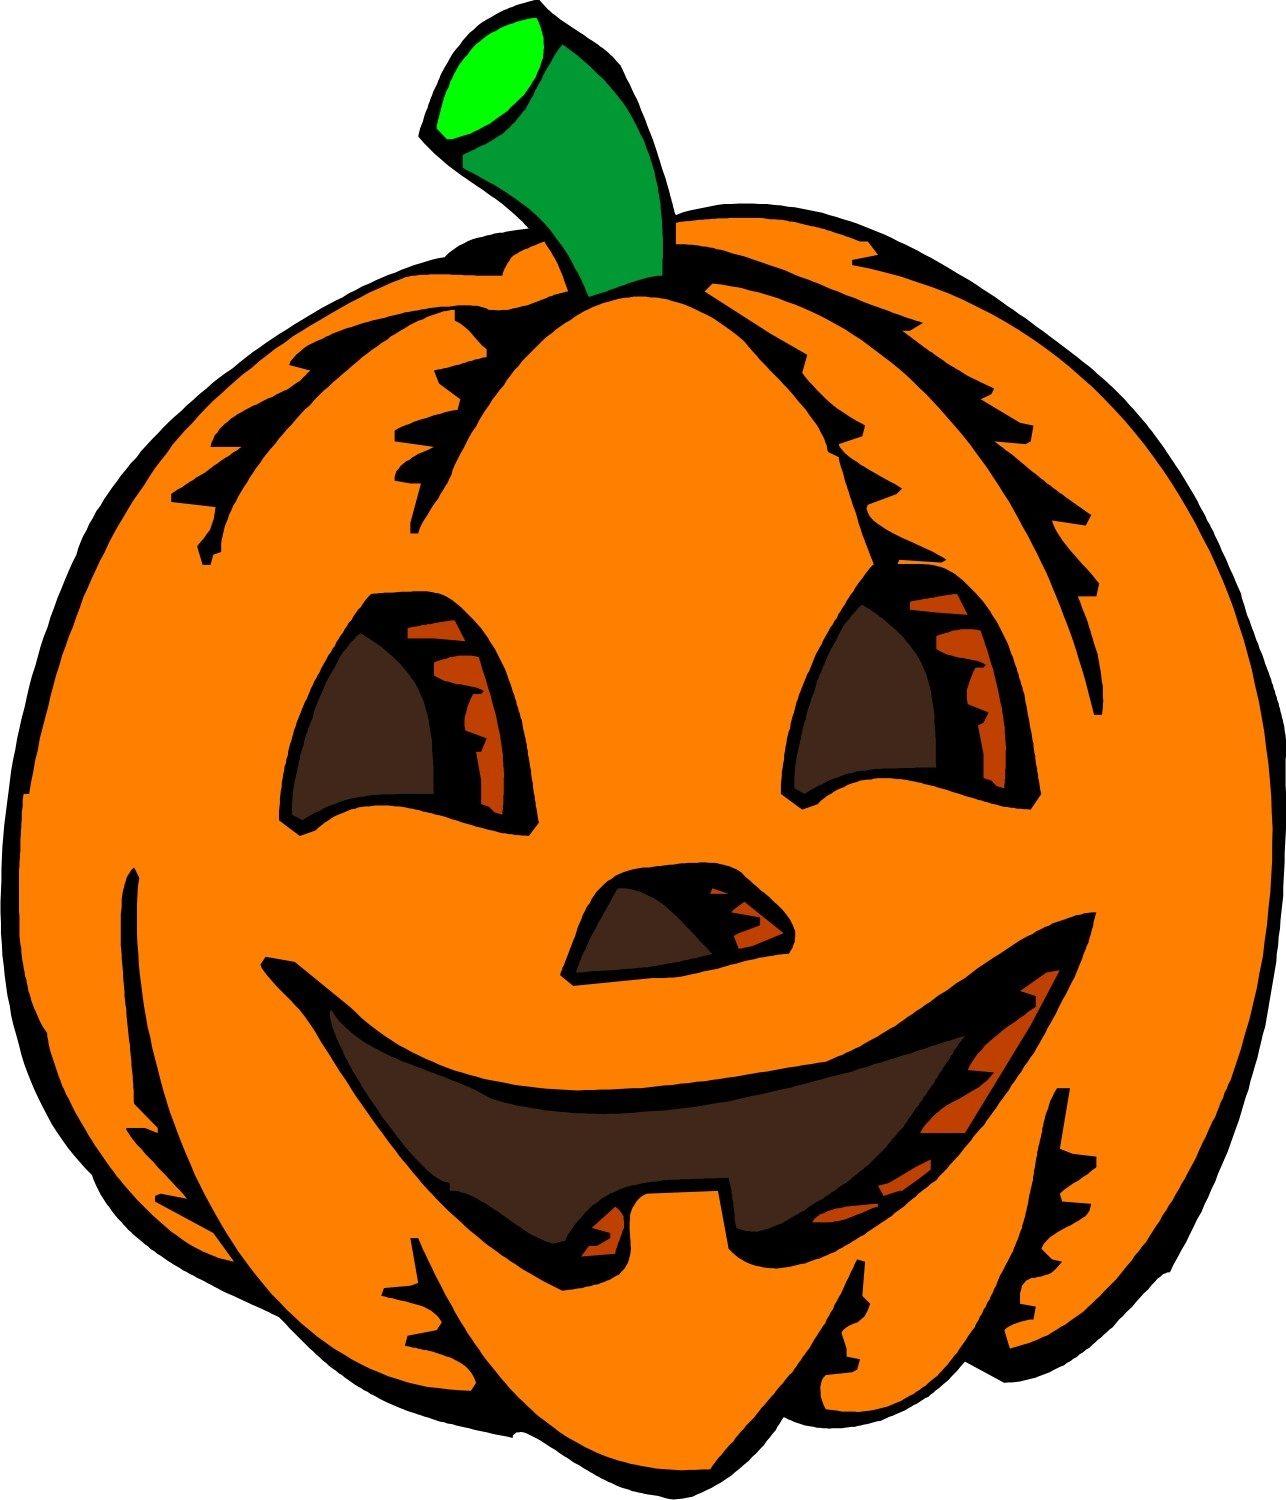 1286x1500 Halloween Pumpkin Clip Art